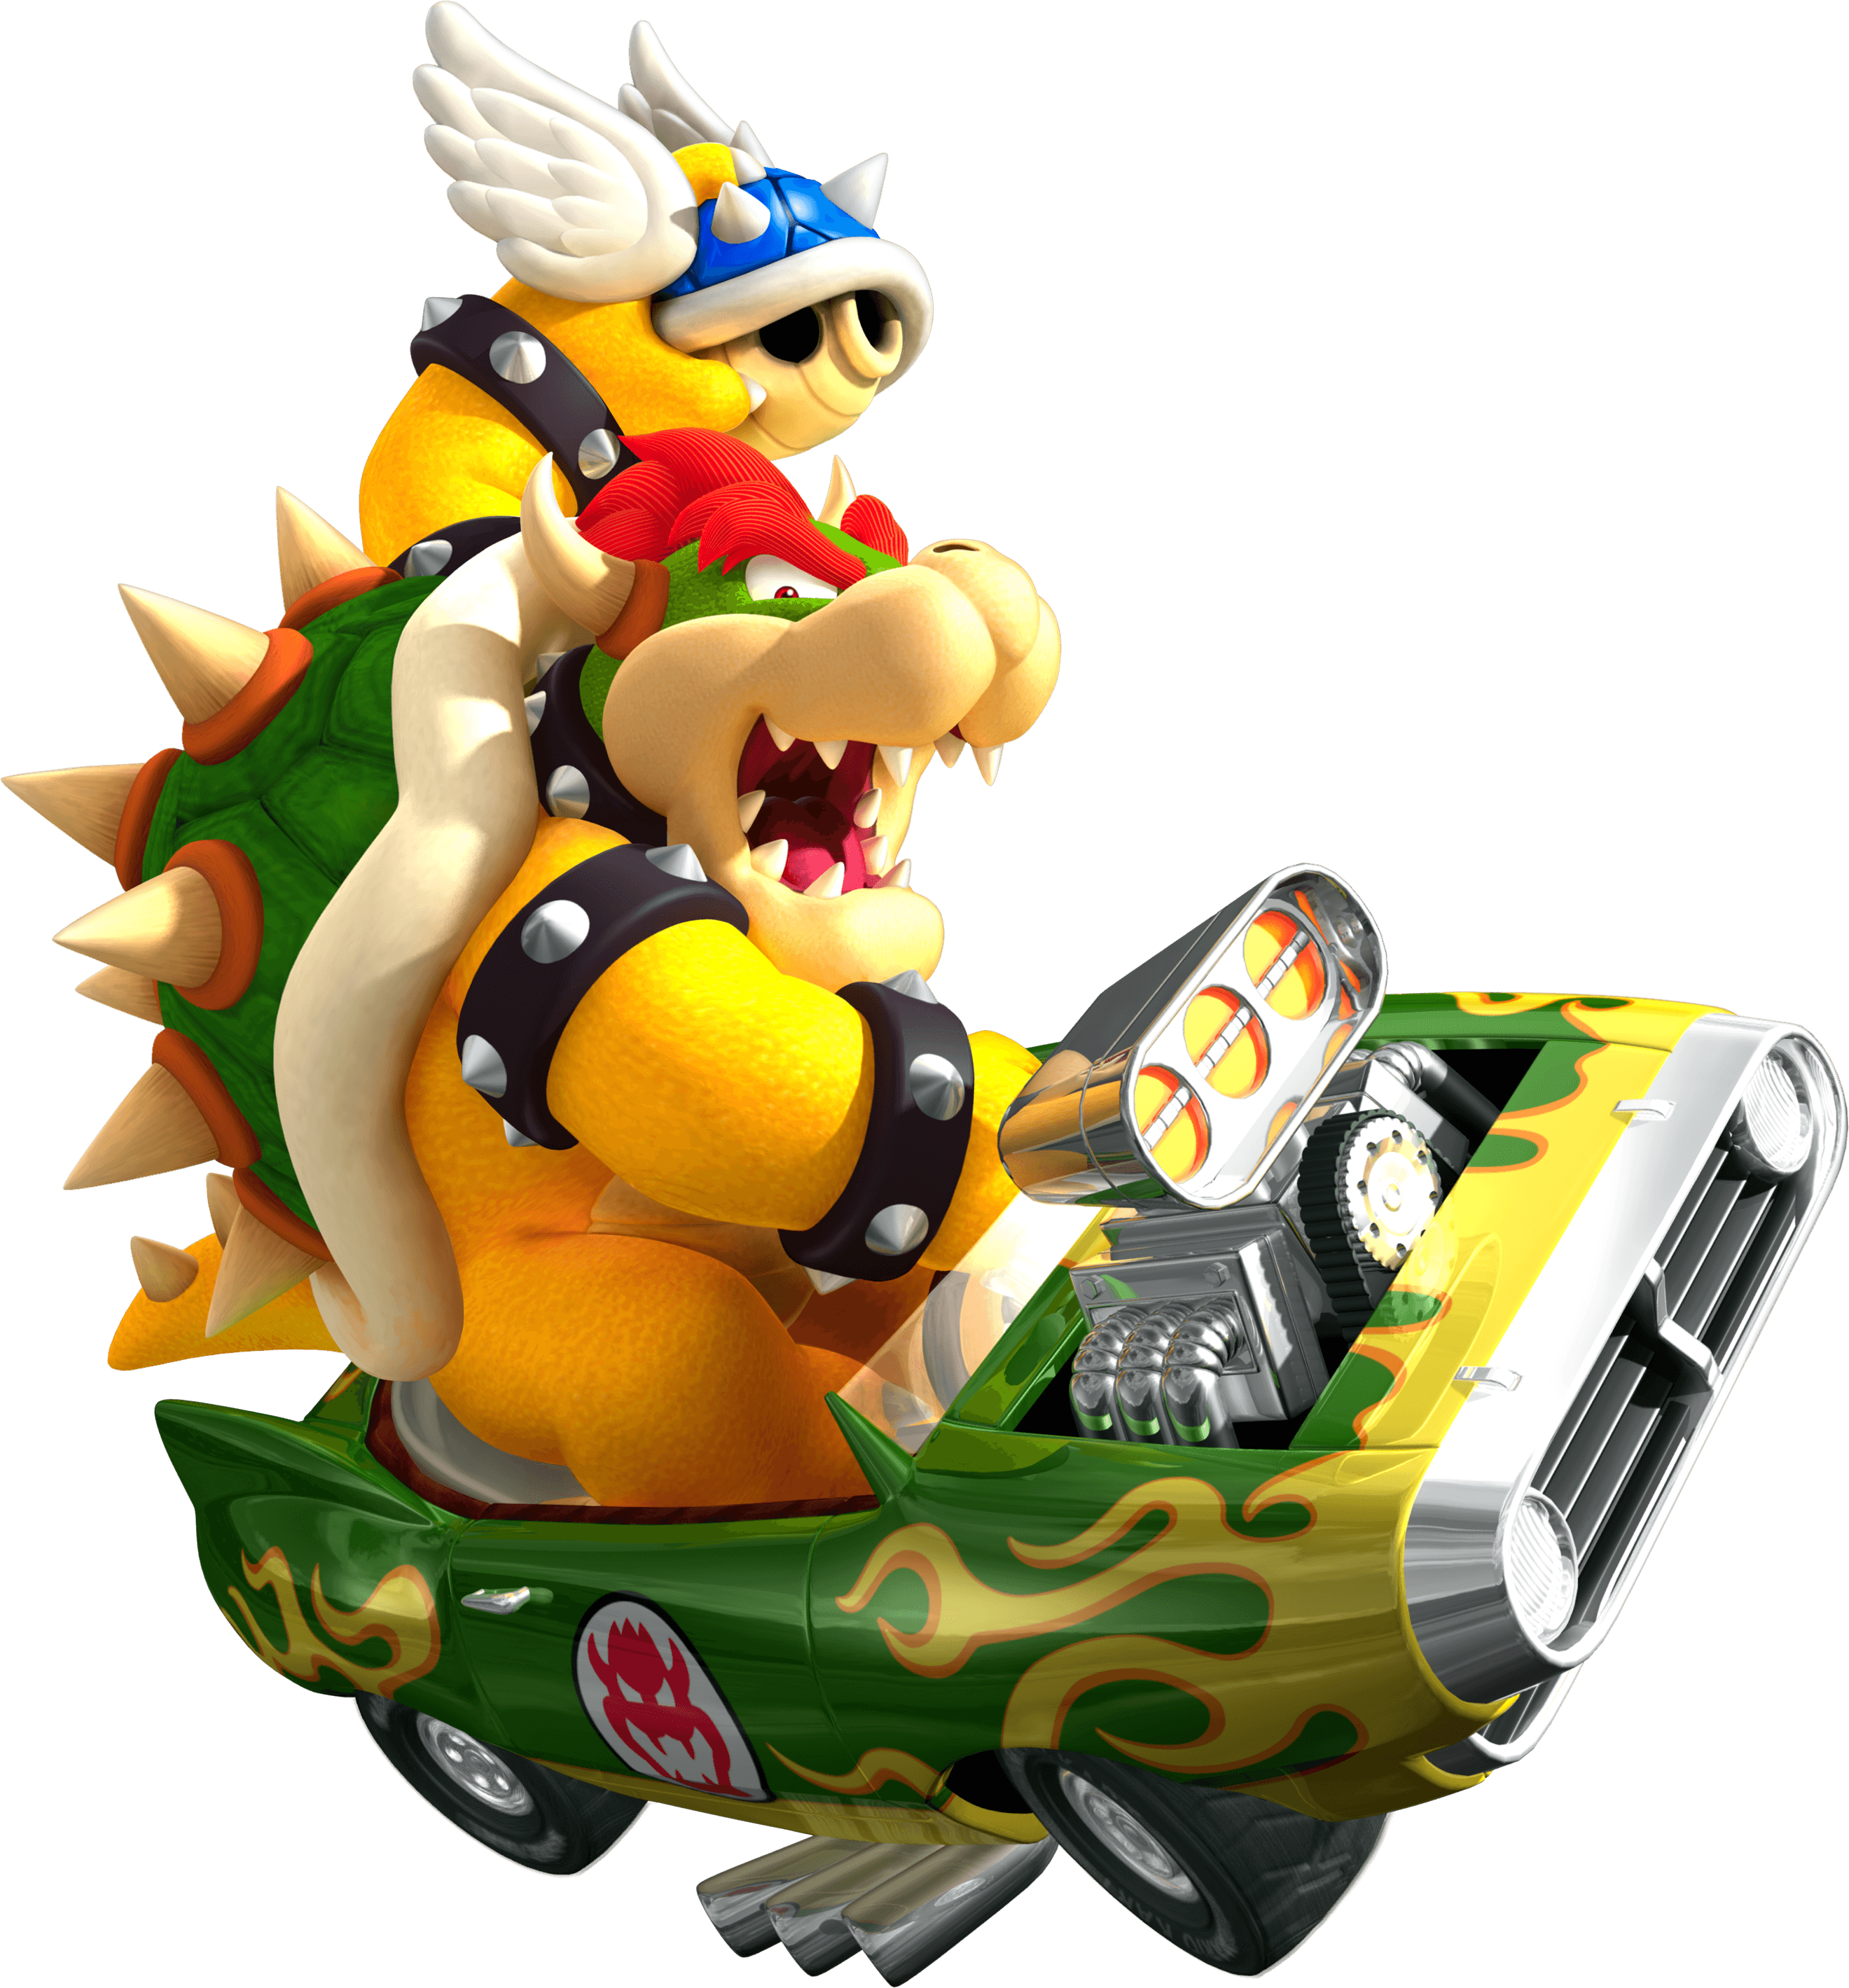 mario kart wii artwork including a massive selection of. Black Bedroom Furniture Sets. Home Design Ideas